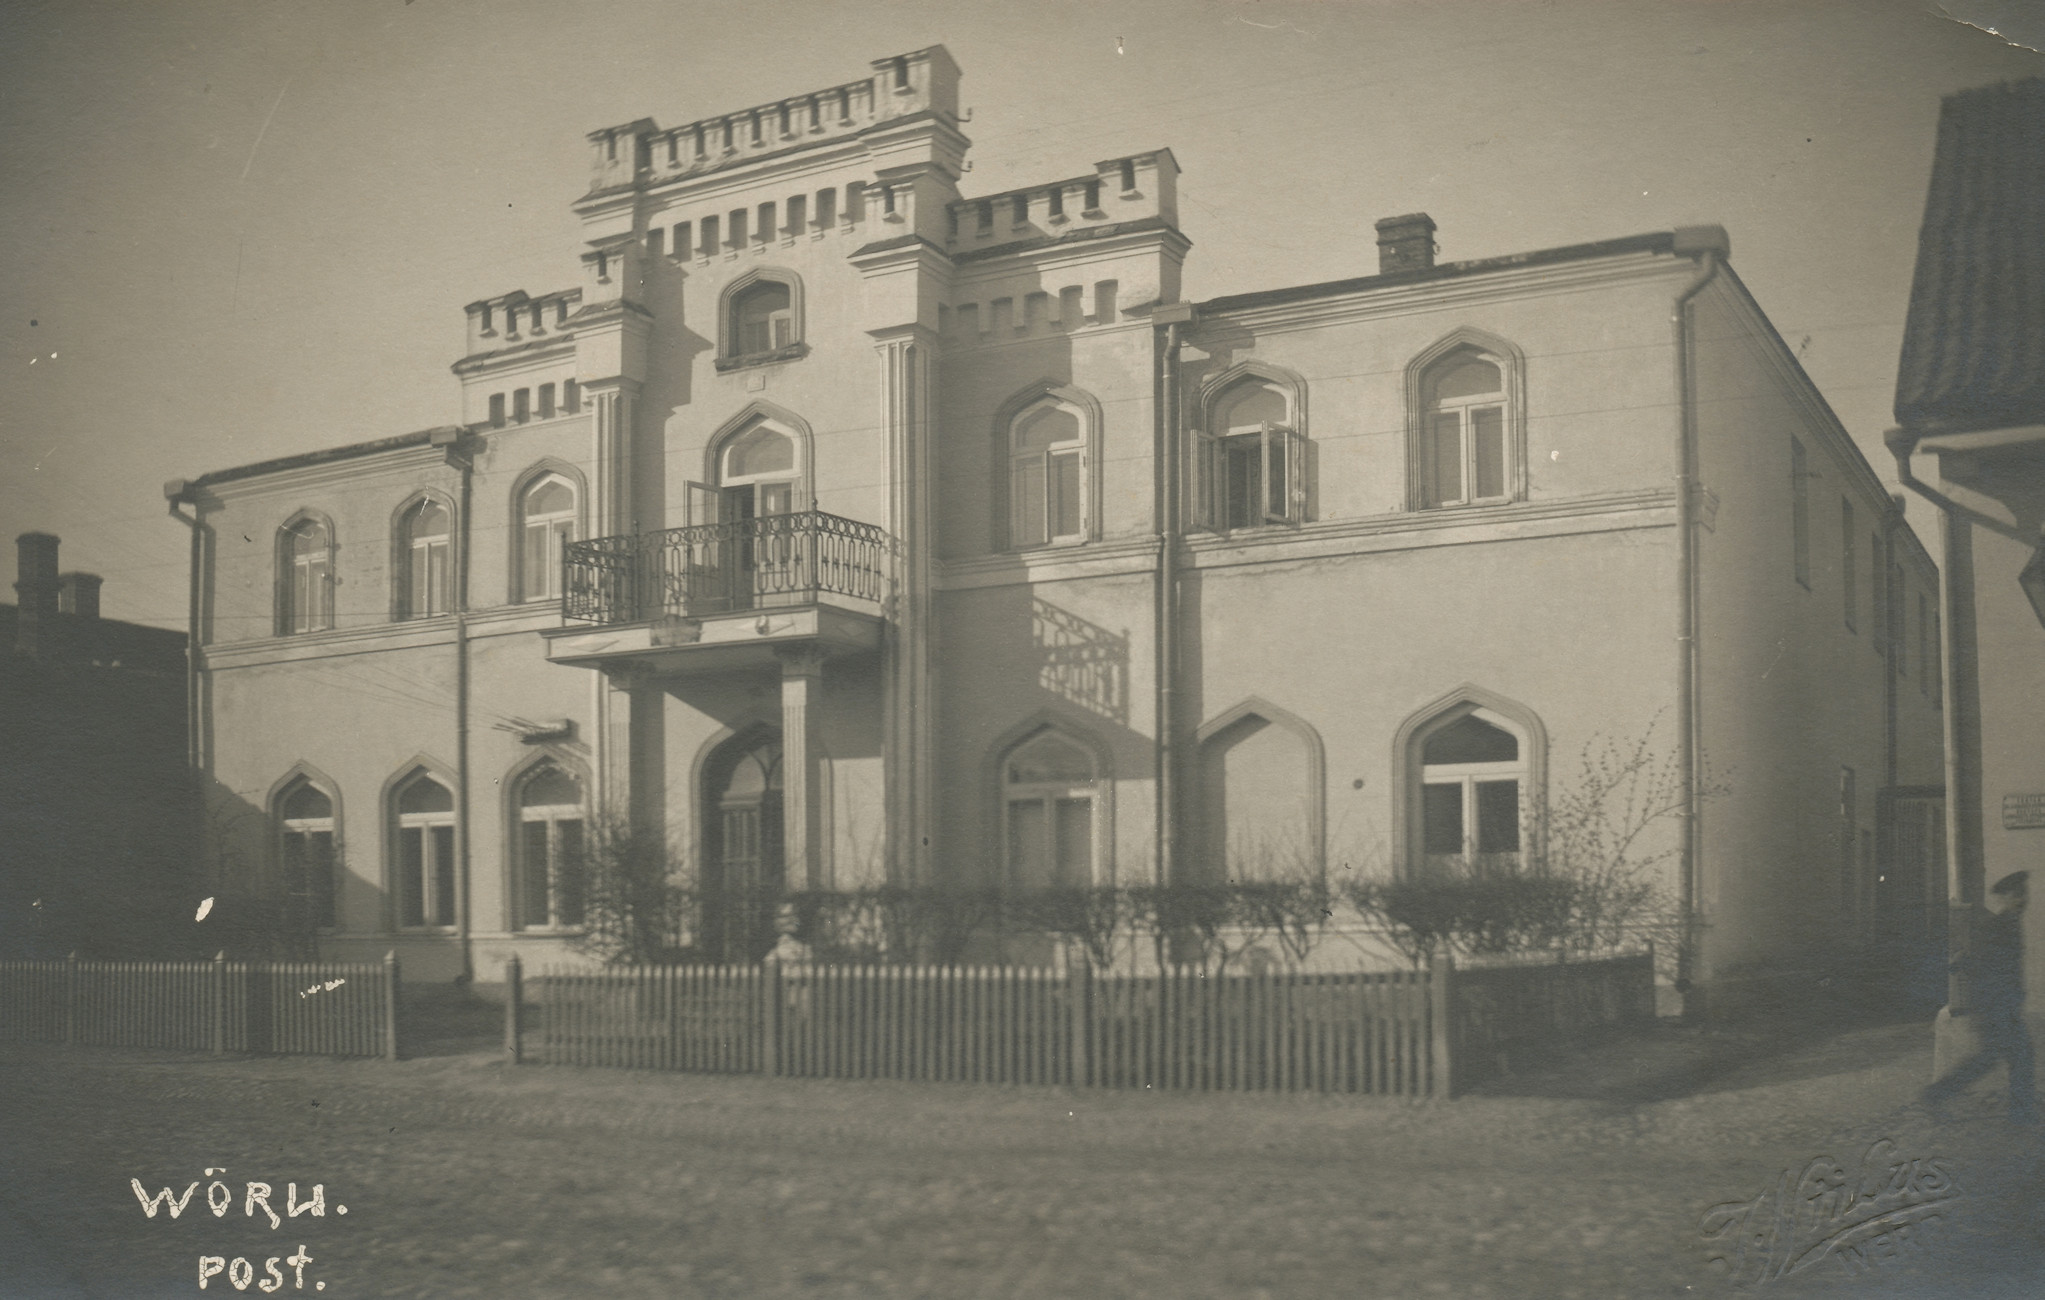 In 1912 it was built to two-storey house